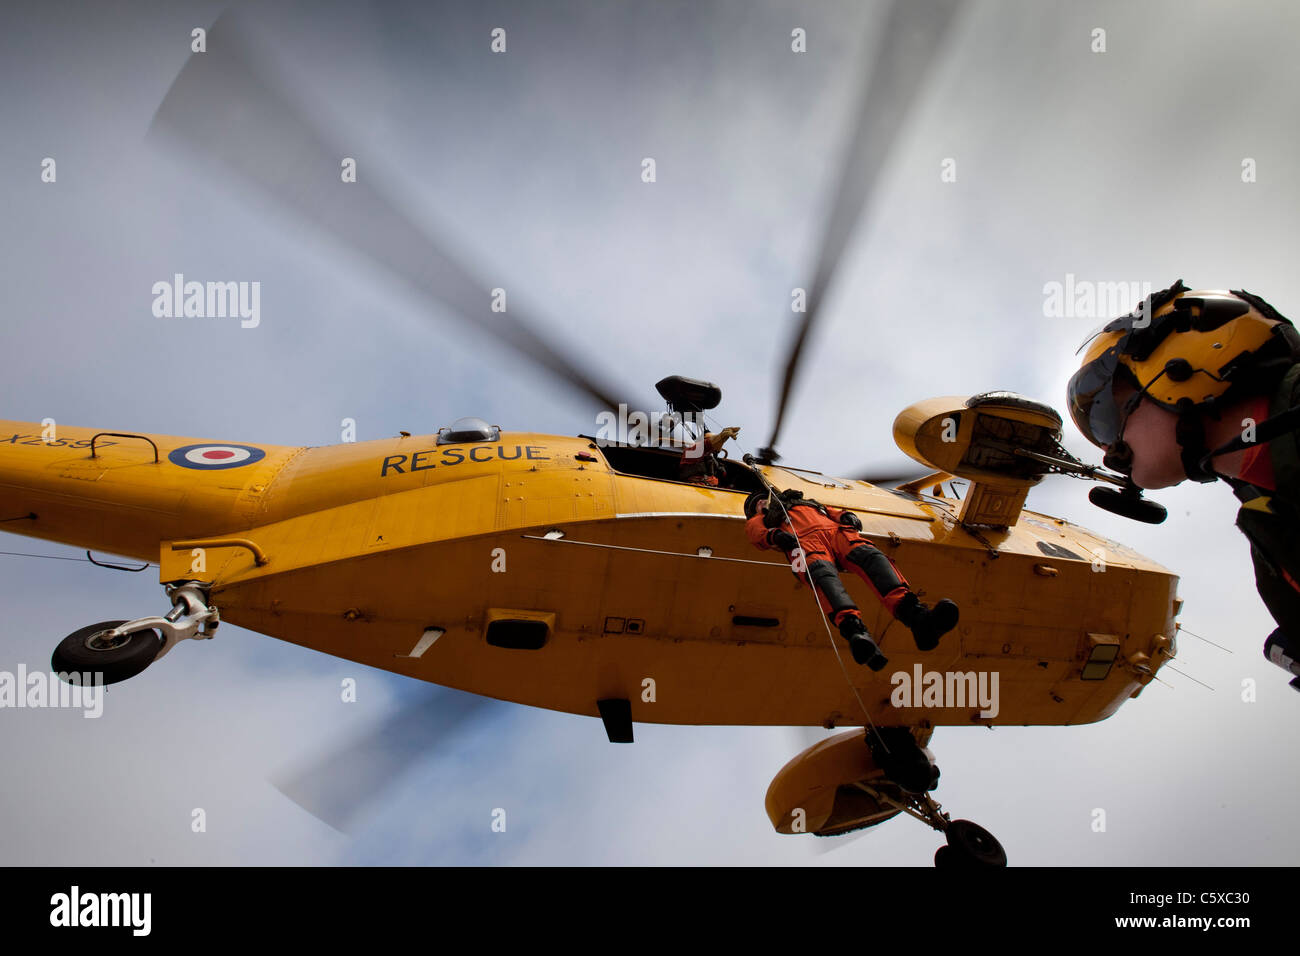 A man is winched up to a hovering Sea King Search and Rescue Helicopter during a SARS training rescue. - Stock Image